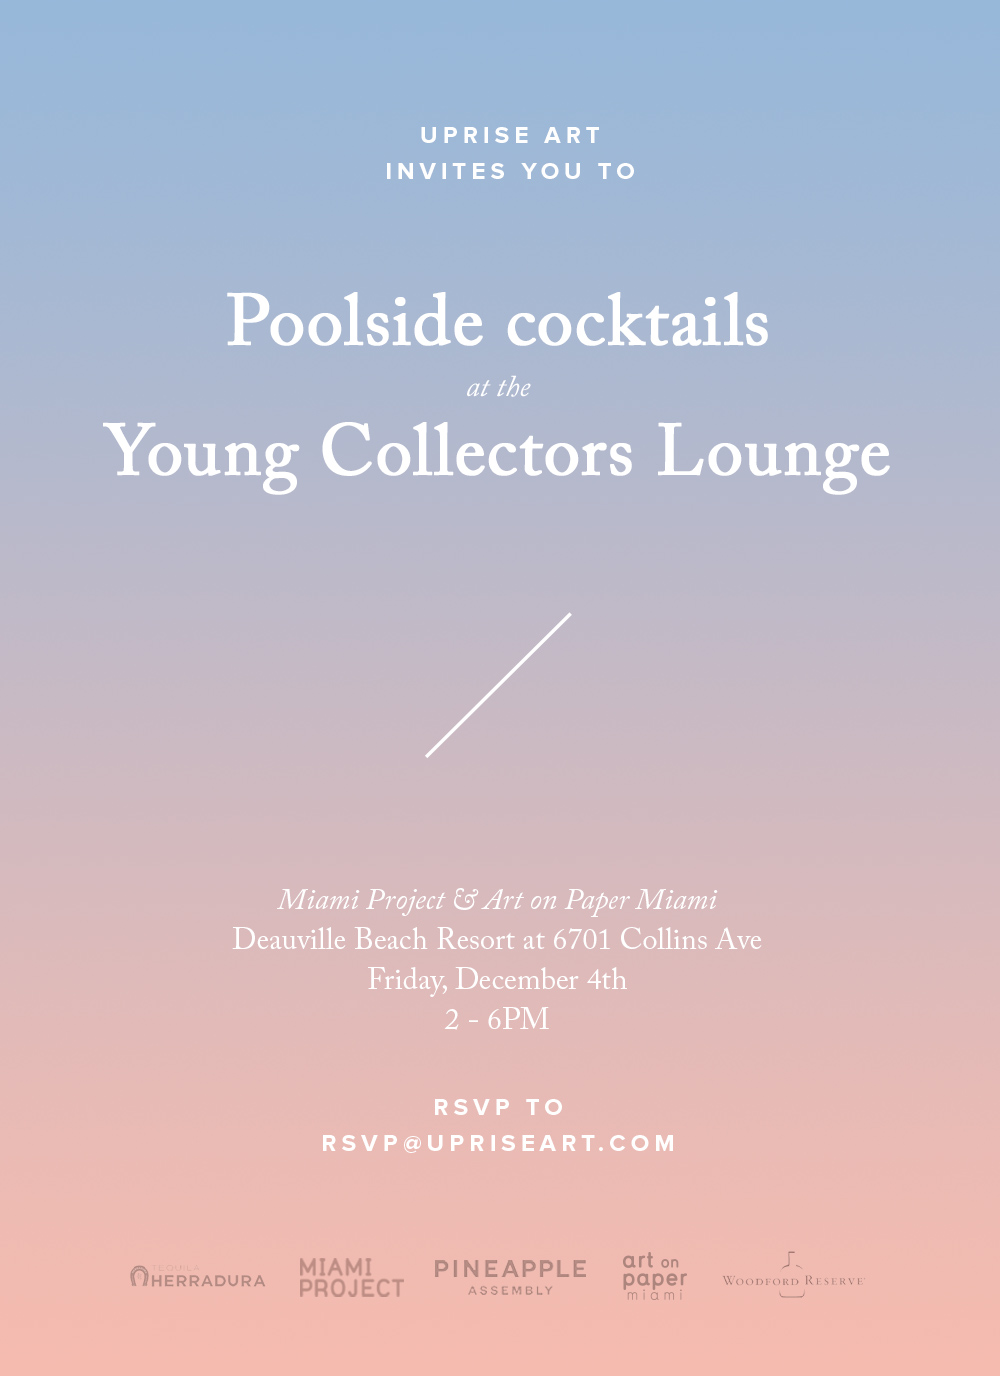 Young_Collectors_Lounge_Invite_(1).jpg